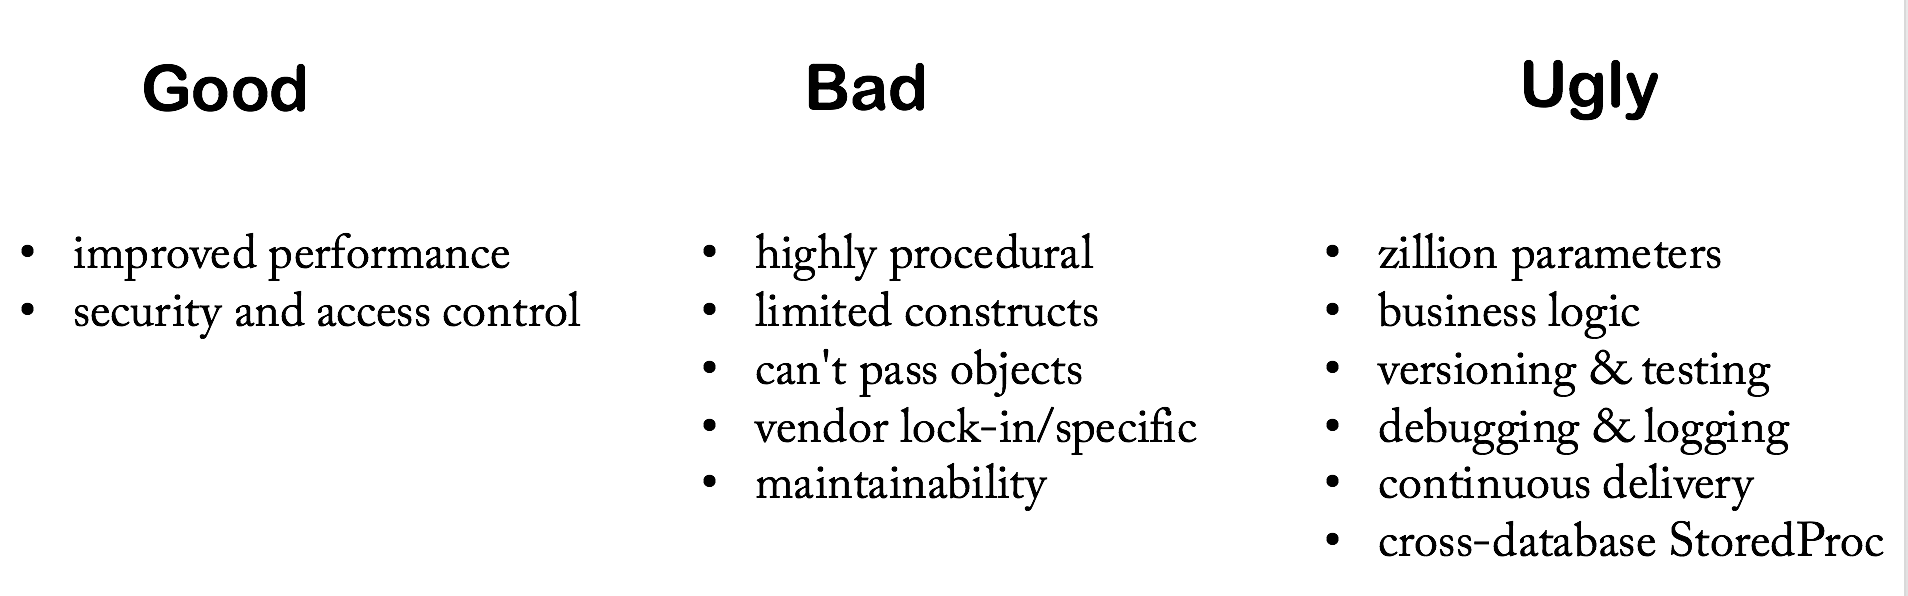 Stored procedure - Good, Bad, and Ugly